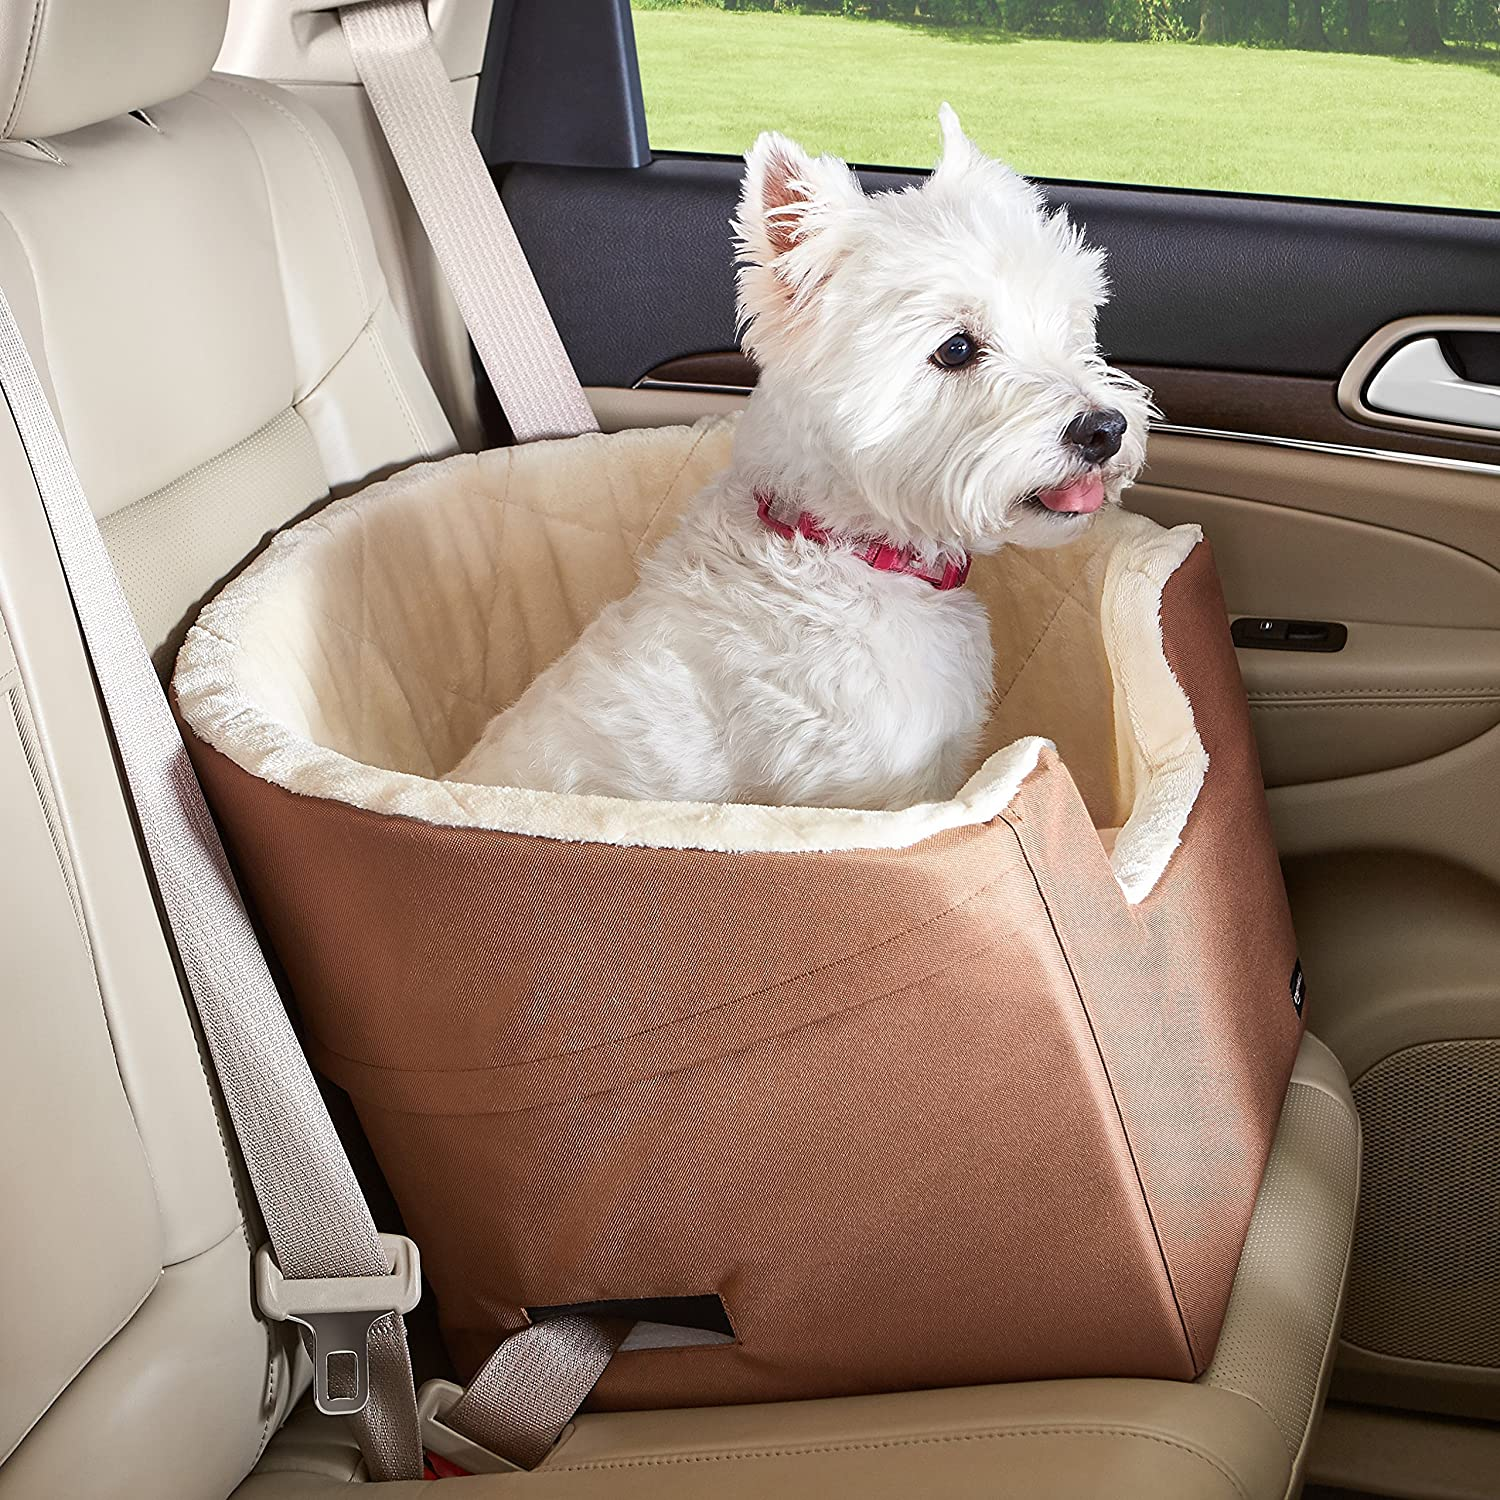 18 x 18 x 16 Inches Basics Pet Car Booster Bucket Seat